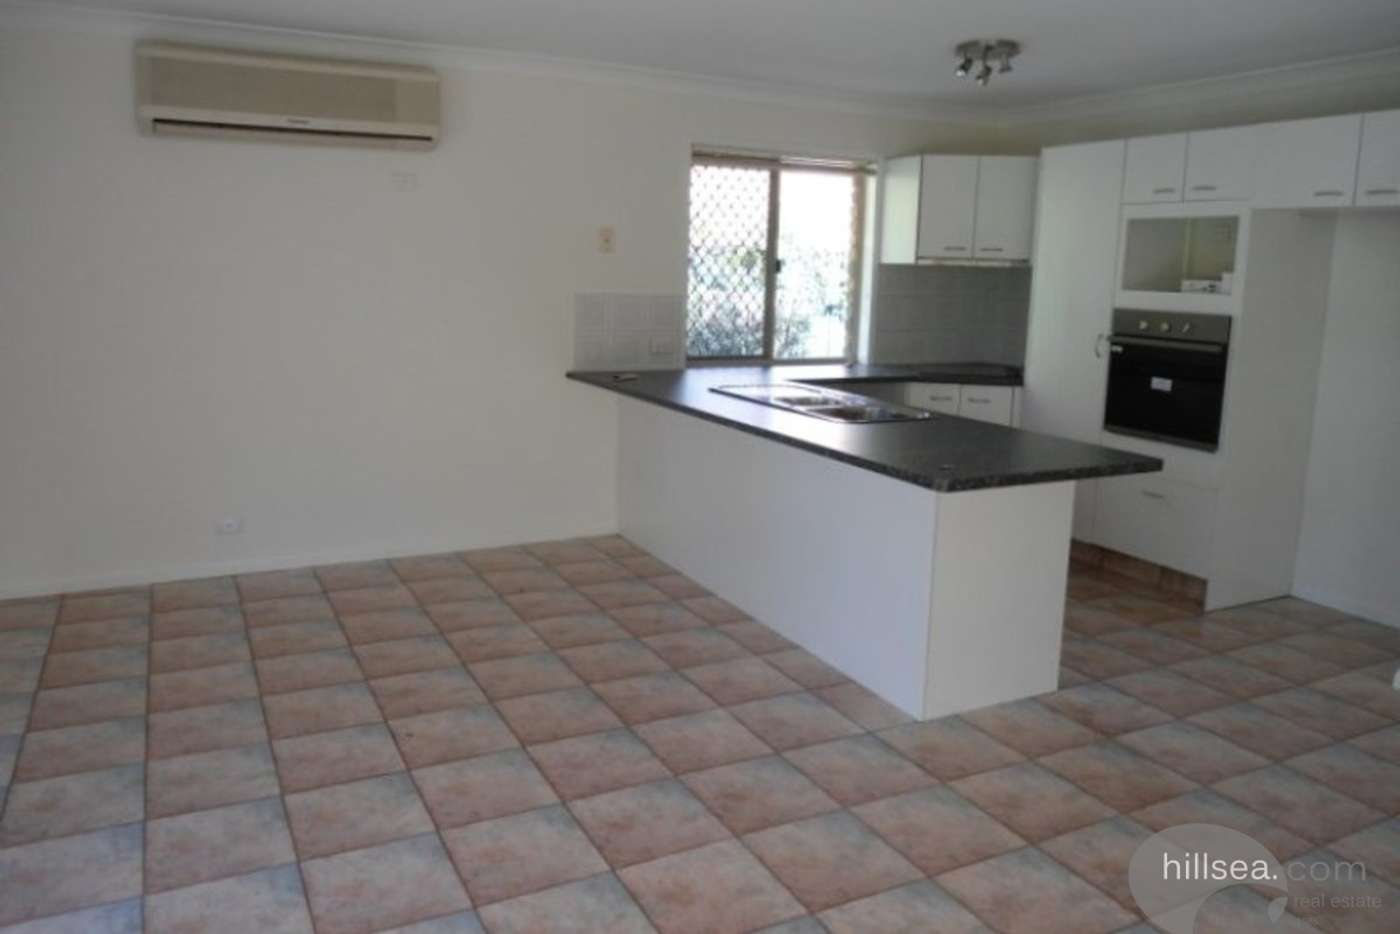 Sixth view of Homely house listing, 143 Henry Cotton Drive, Parkwood QLD 4214